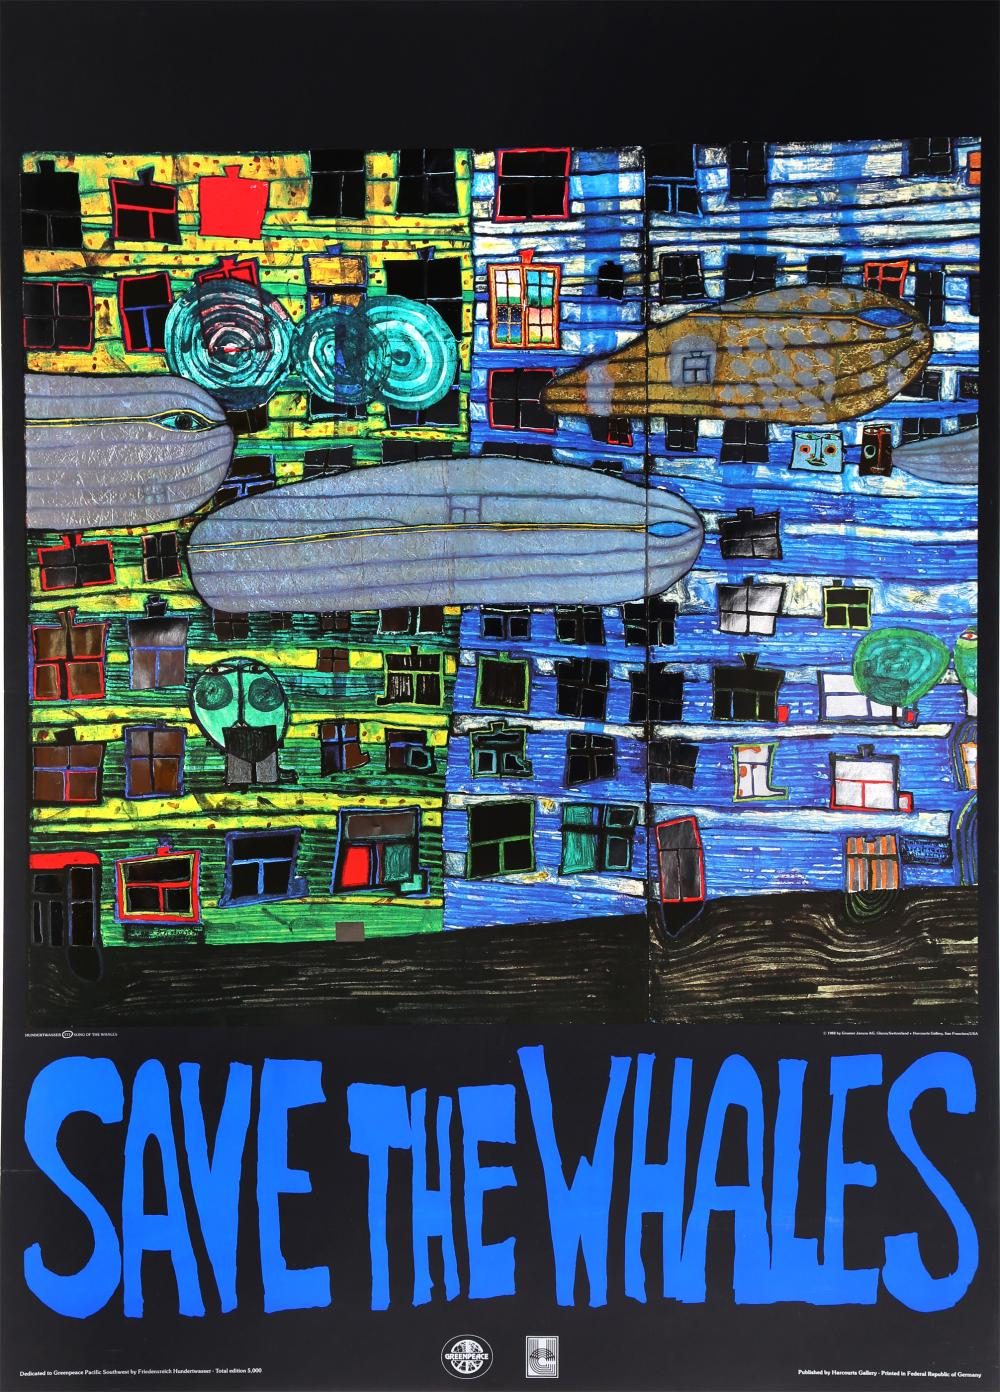 FRIEDENSREICH HUNDERTWASSER, SAVE THE WHALES, OFFSET PRINT WITH FOIL EMBOSSING